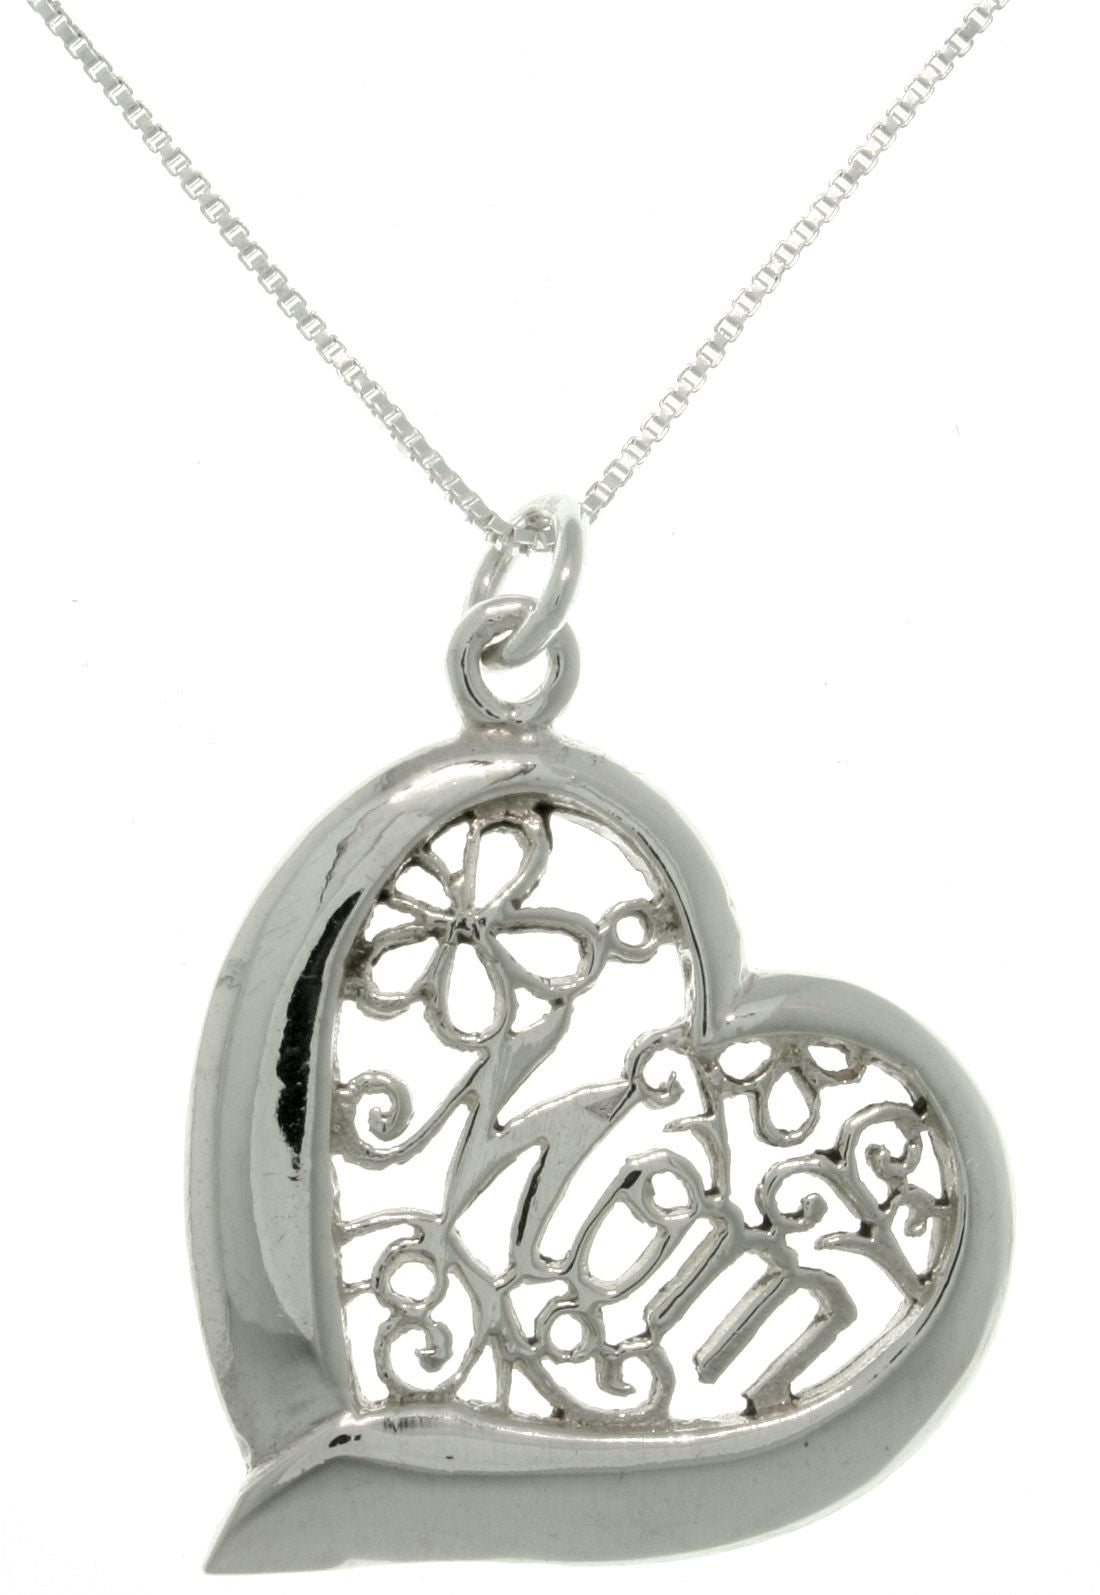 Jewelry Trends Sterling Silver Mom Heart Pendant on 18 Inch Box Chain Necklace Mothers Day Gift